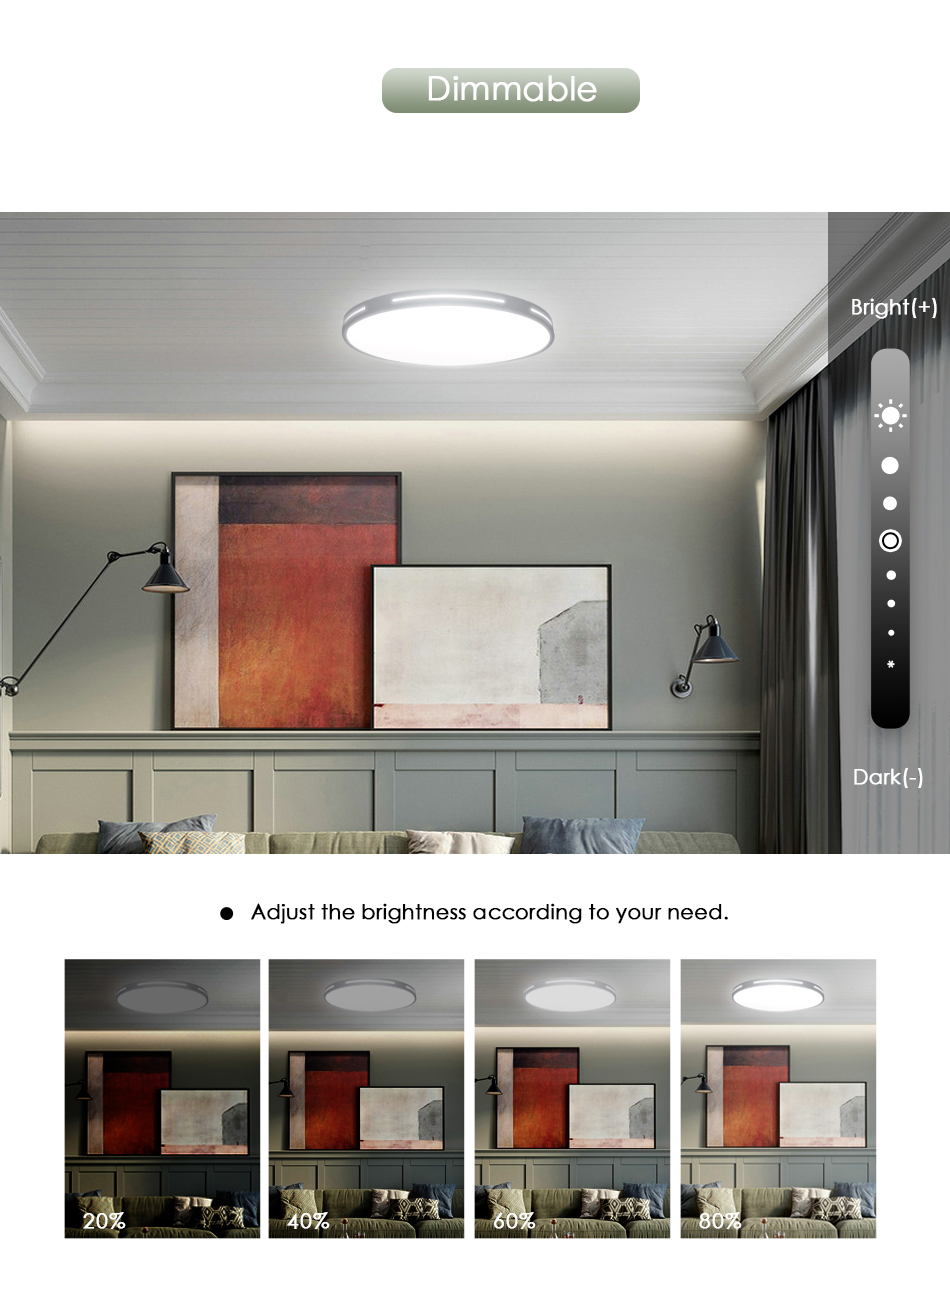 HTB1063TXKL2gK0jSZFmq6A7iXXay Modern LED Ceiling Light Lamp Lighting Fixture Surface Mount Flush Remote Control Dimmable 18W 48W Living Room Bedroom Balcony